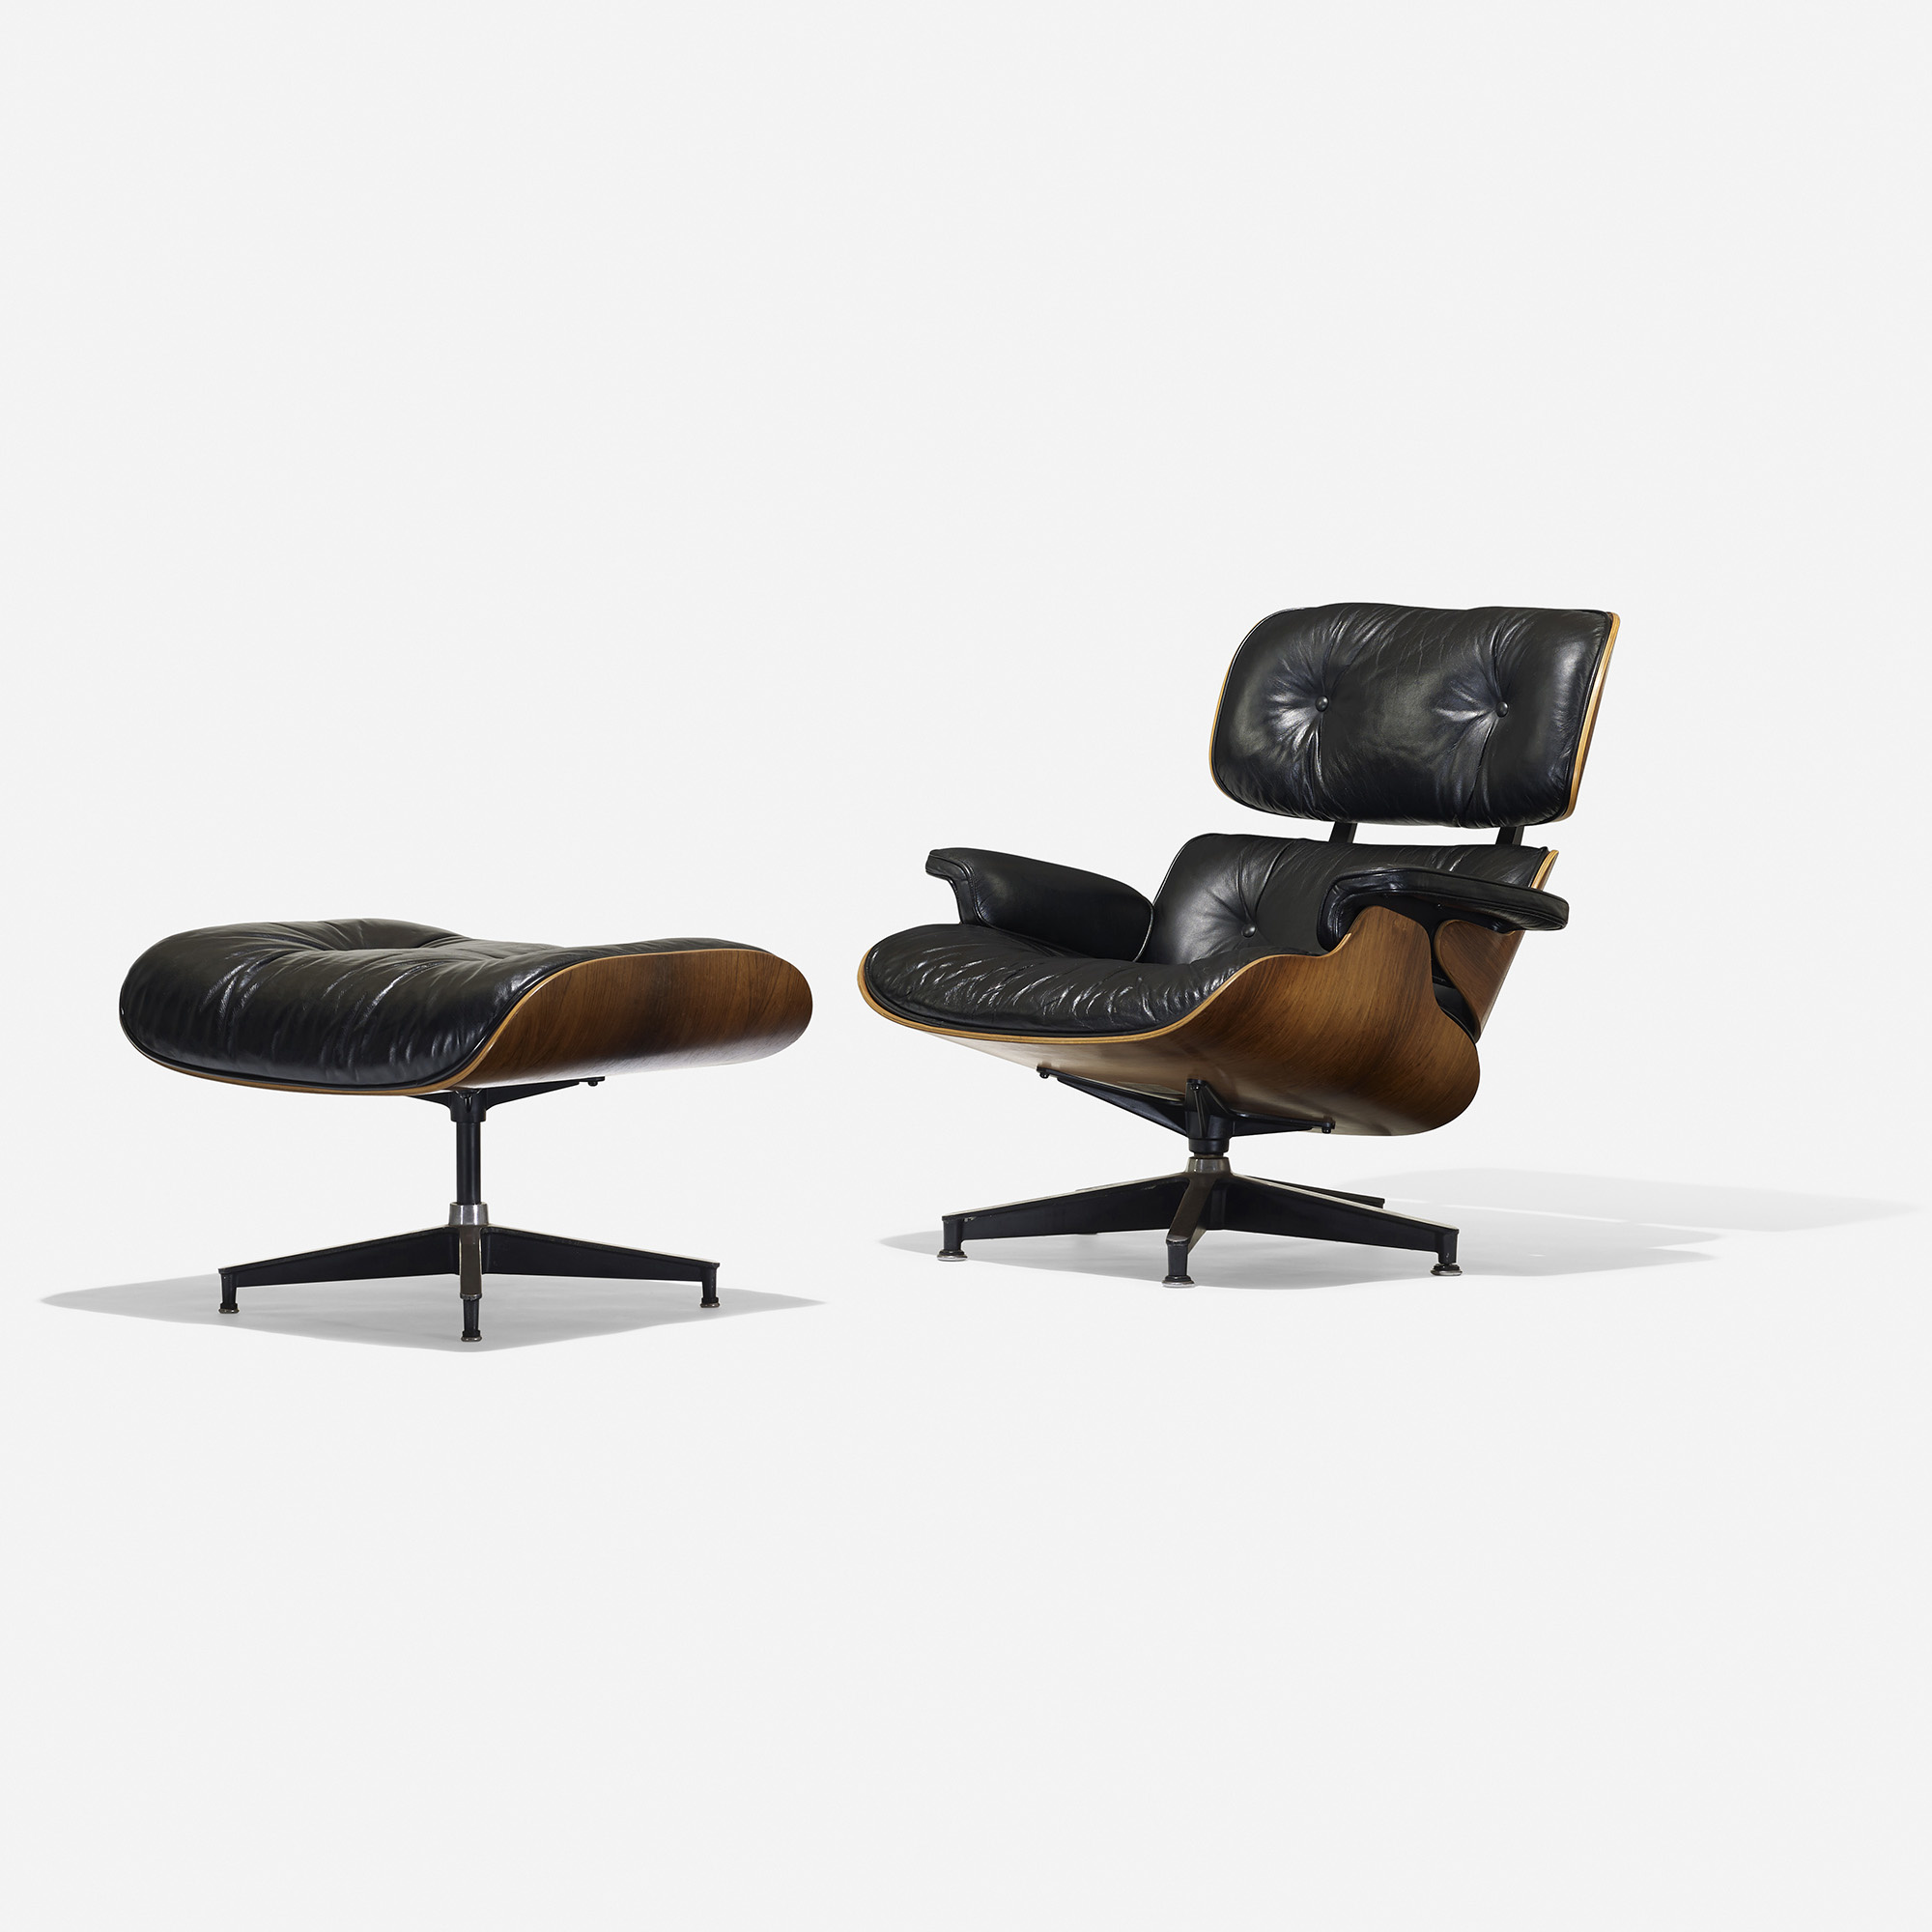 Eames 108 108 Charles And Ray Eames 670 Lounge Chair And 671 Ottoman